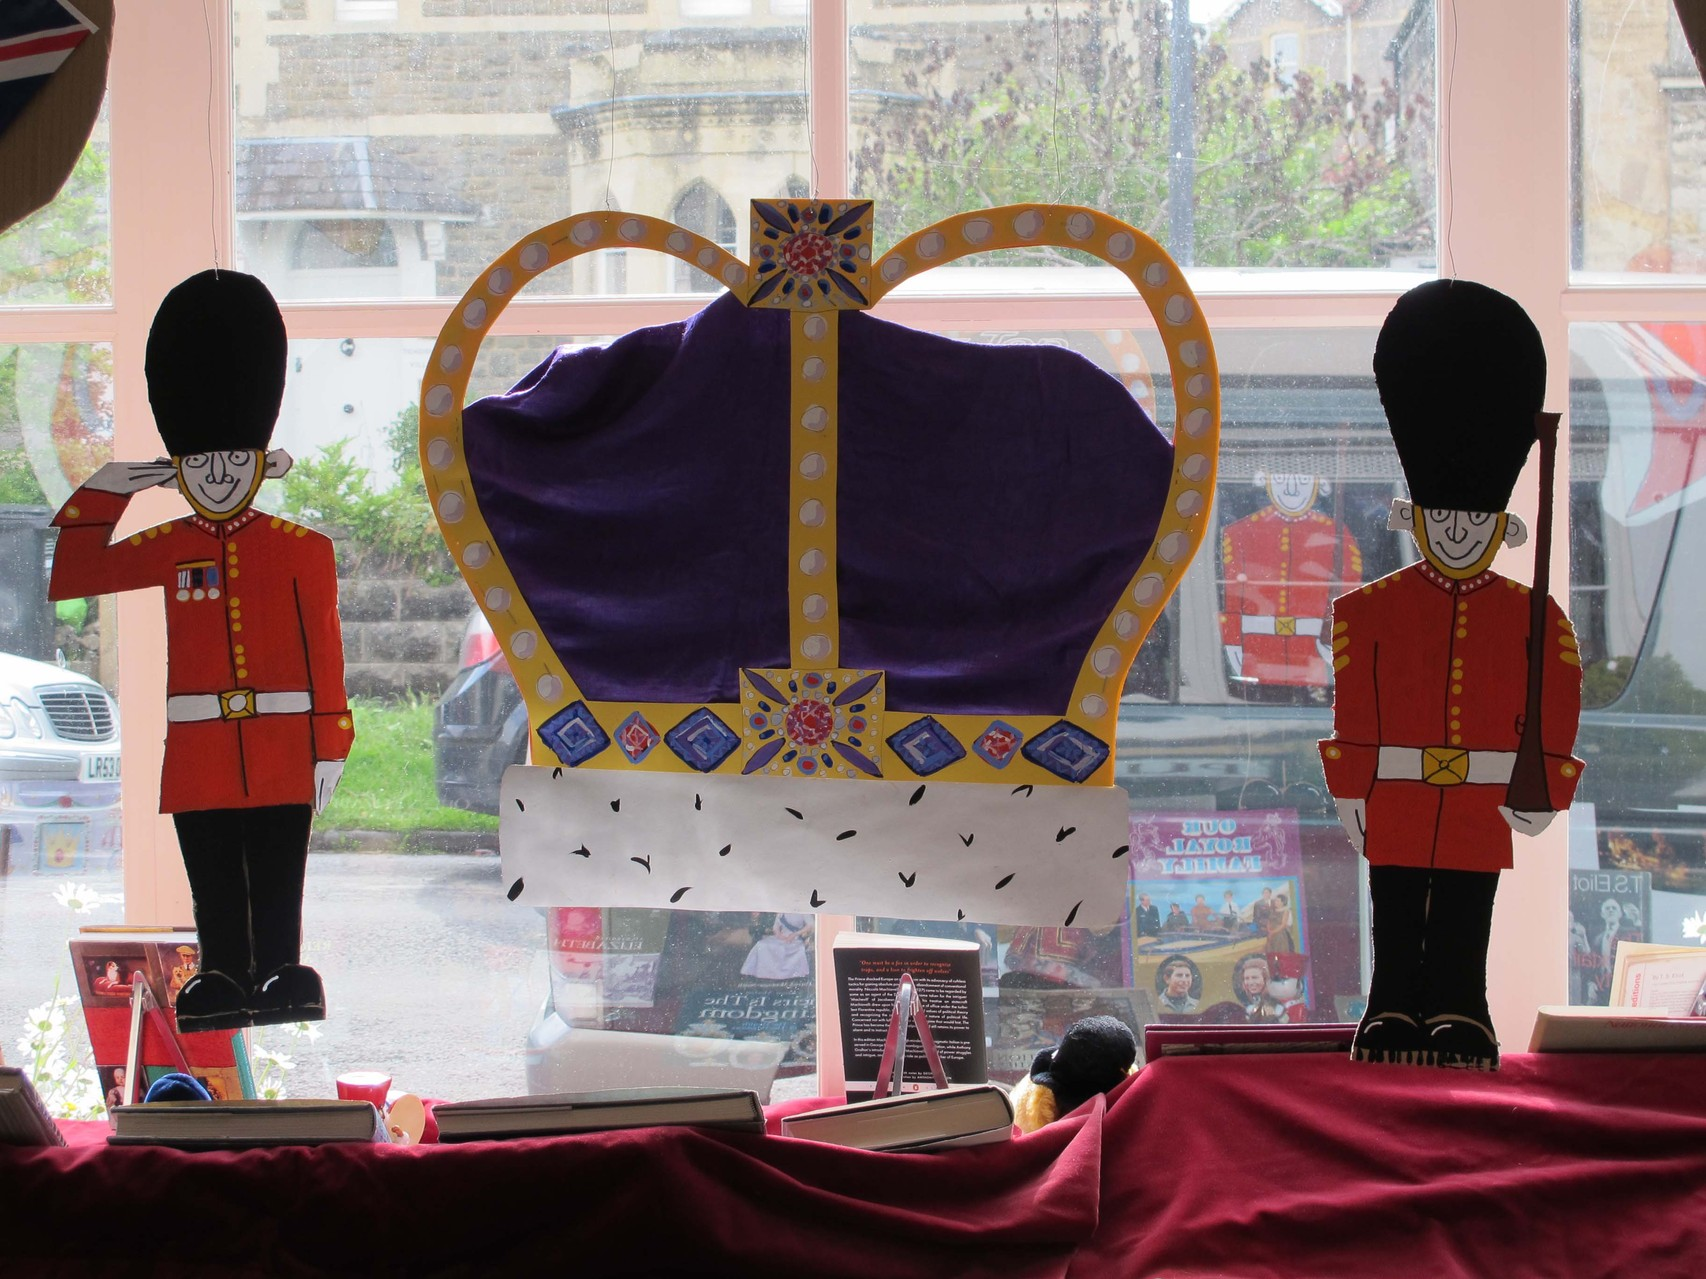 June 2012 - Queen's Diamond Jubilee